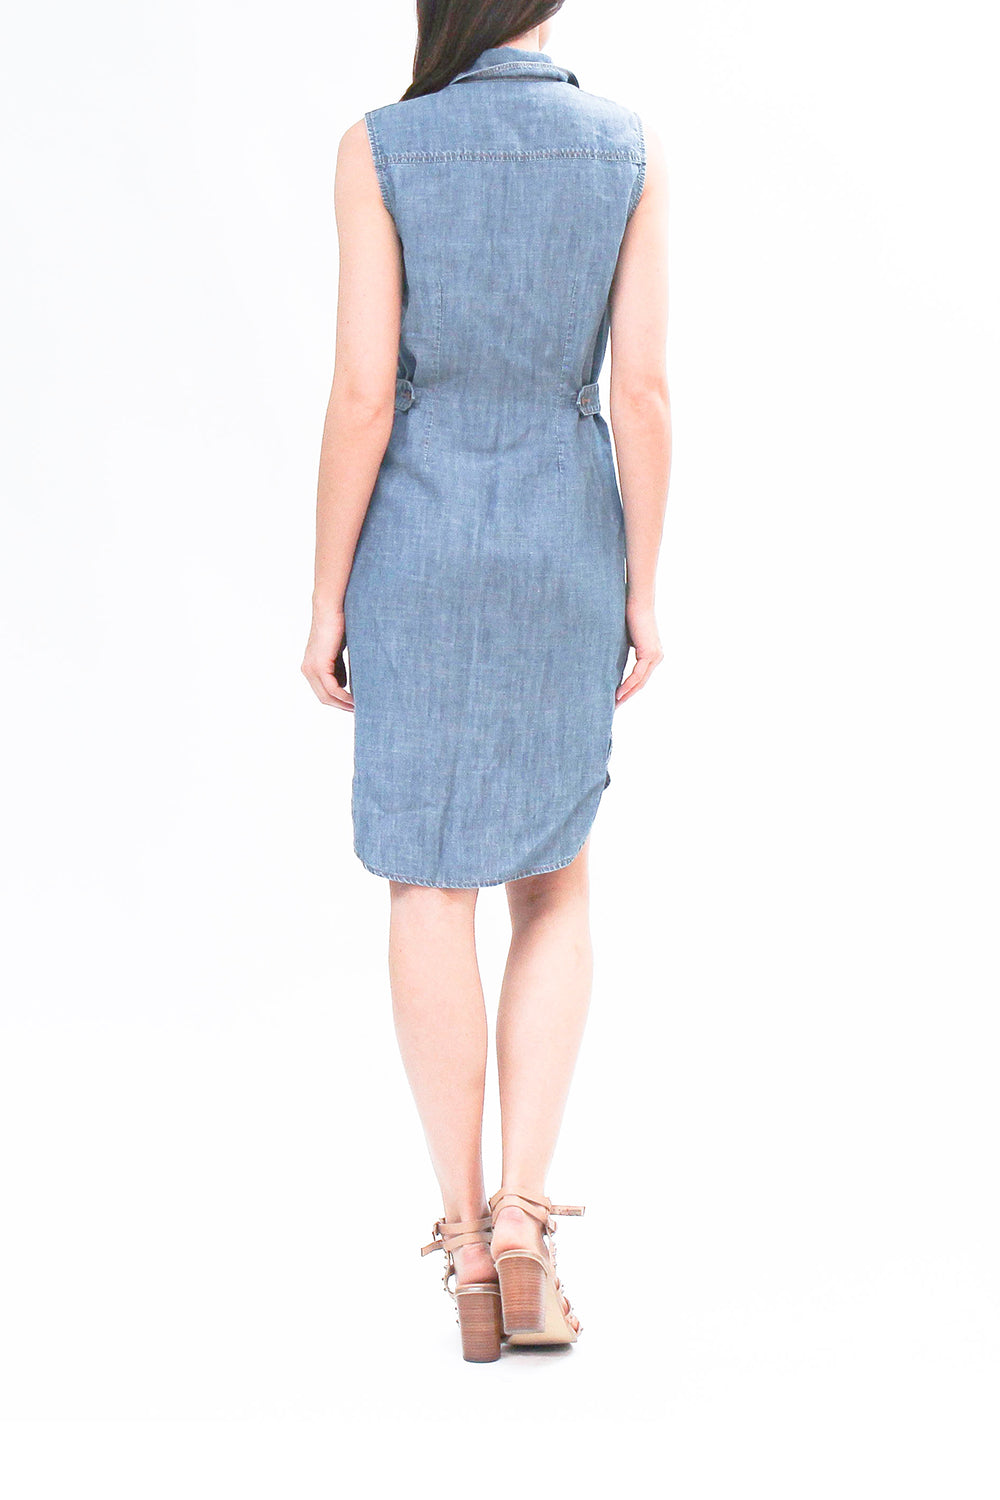 Heather Sleeveless Dress Jetty